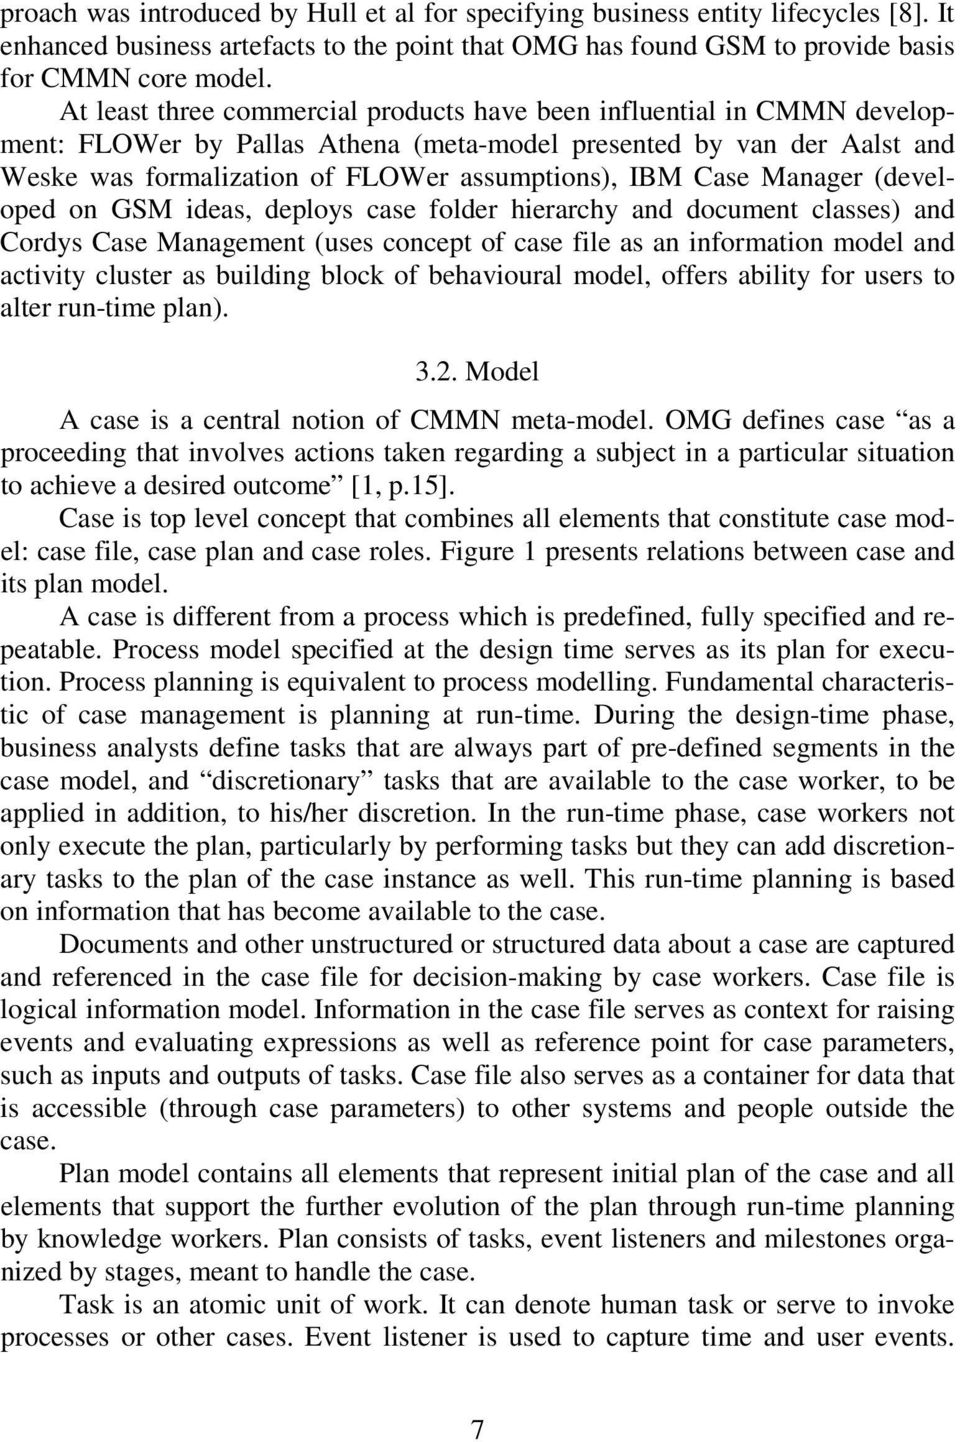 Case Manager (developed on GSM ideas, deploys case folder hierarchy and document classes) and Cordys Case Management (uses concept of case file as an information model and activity cluster as